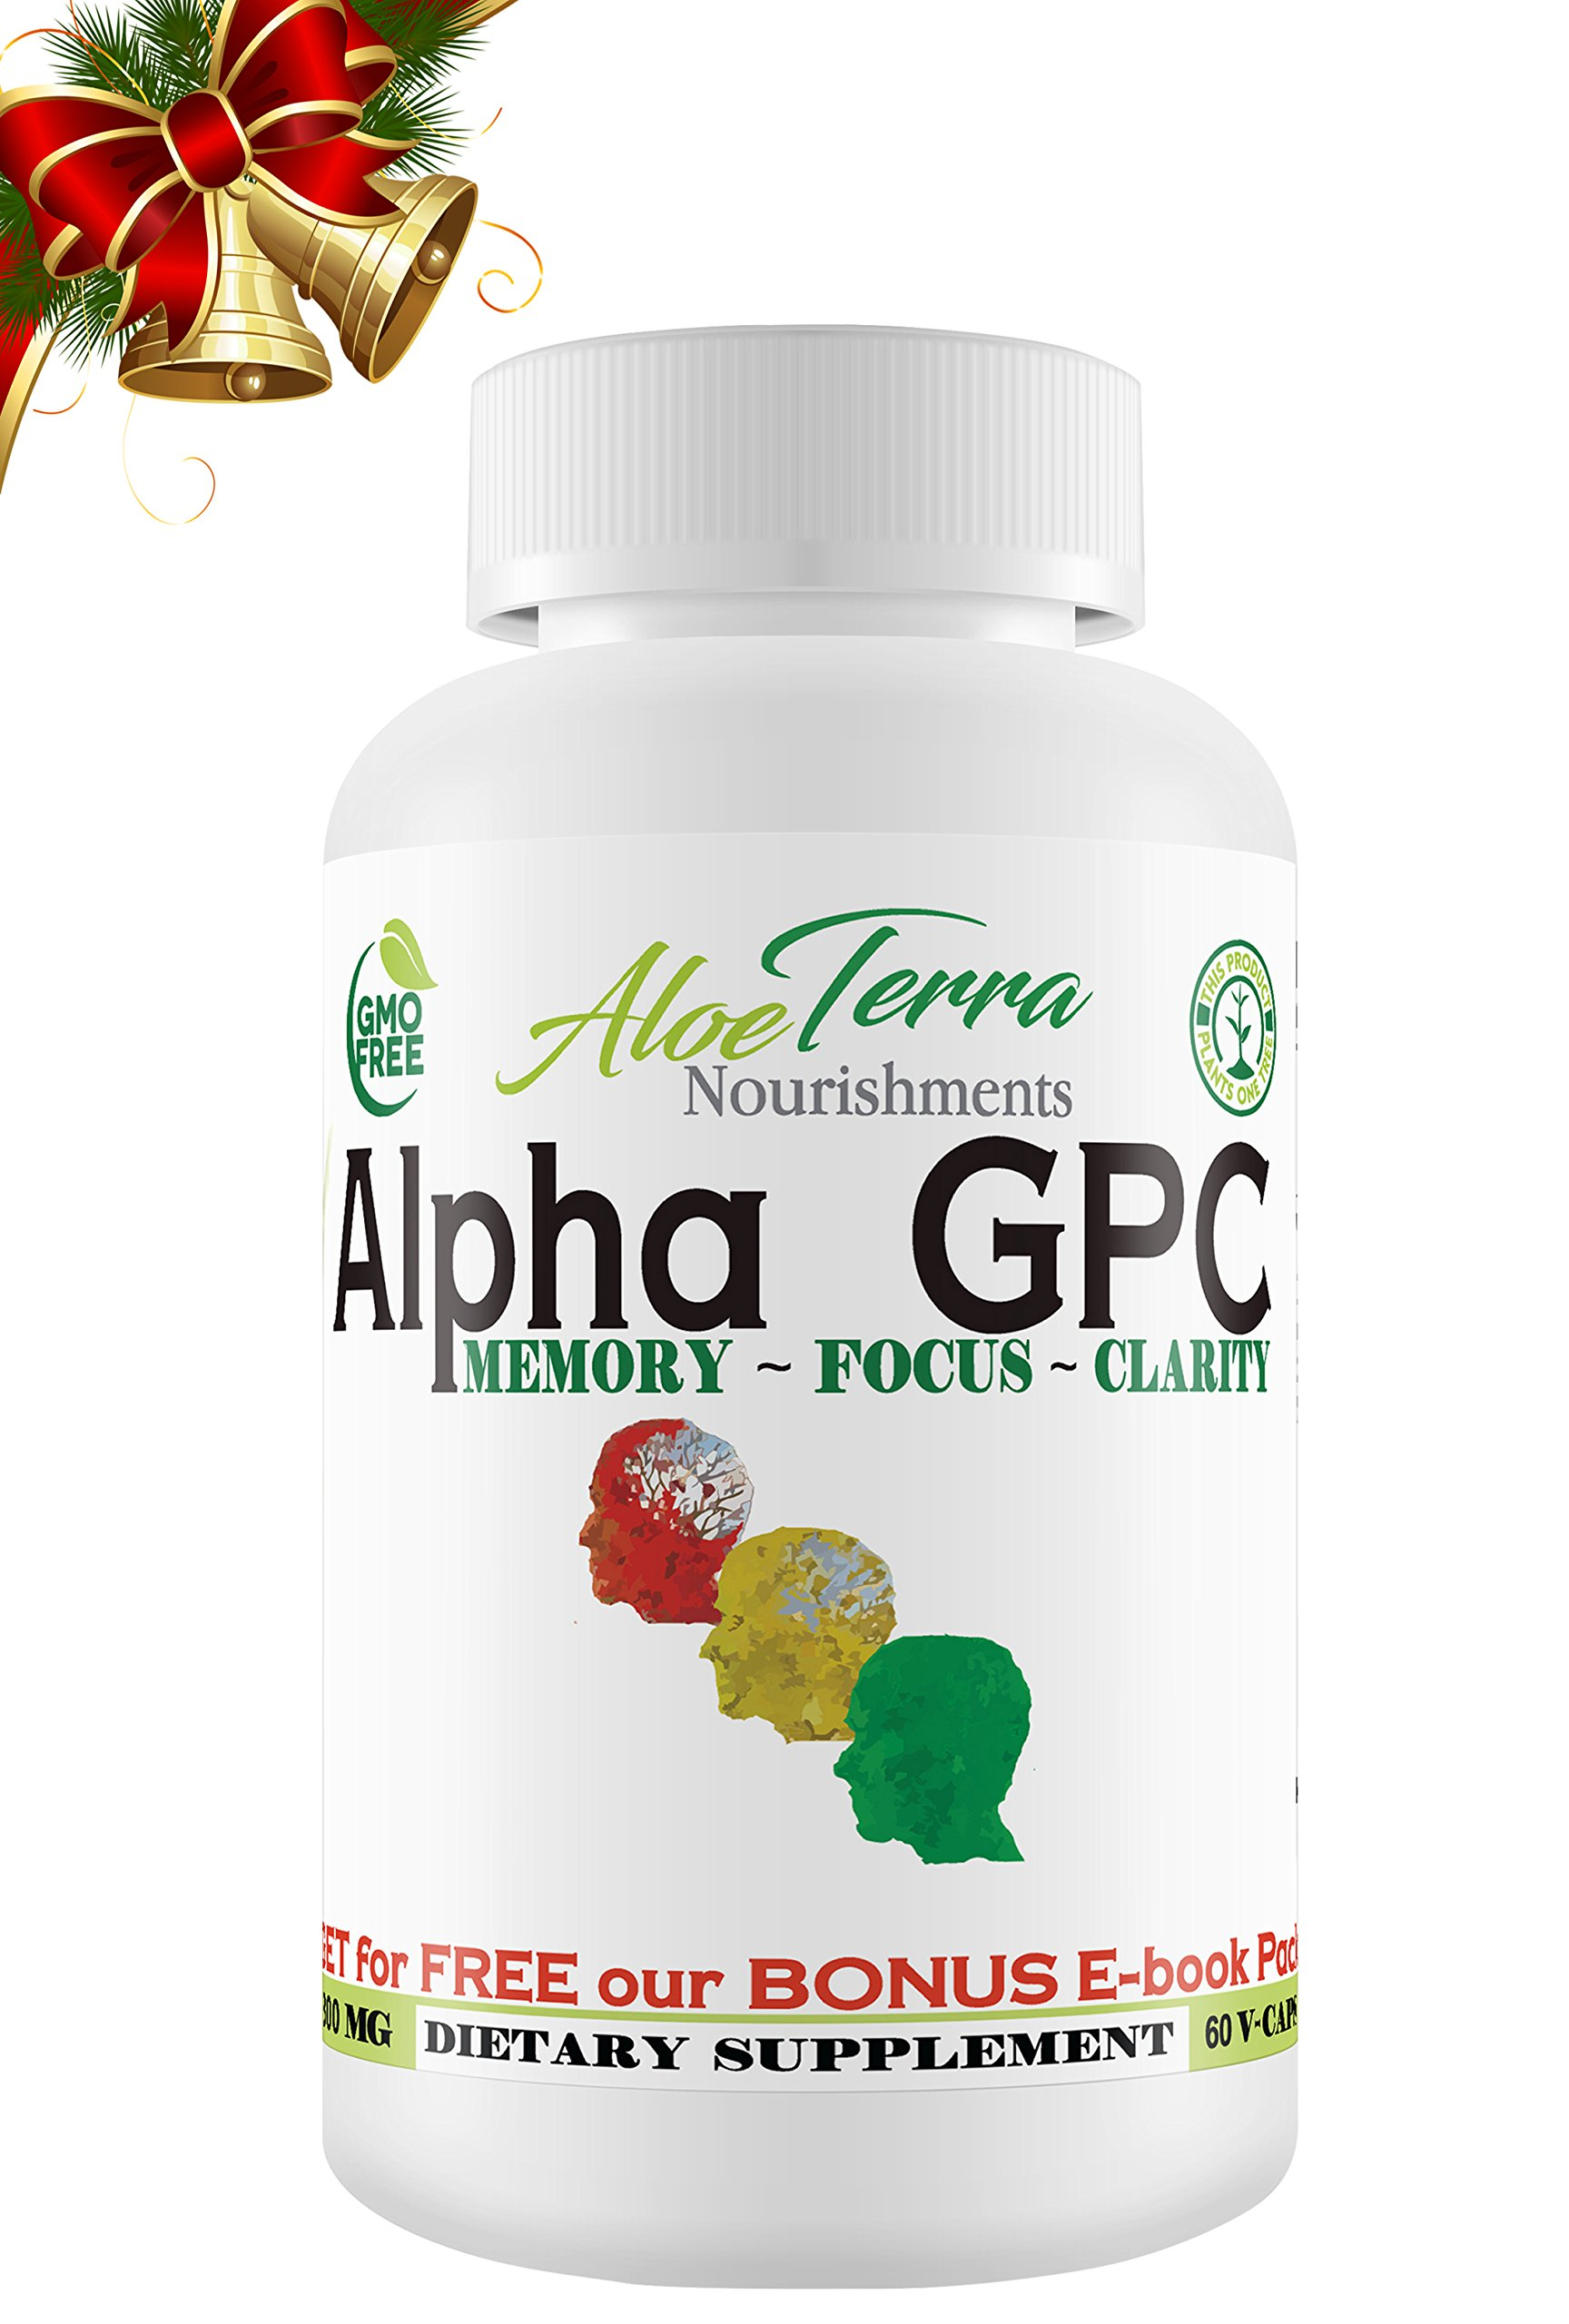 Alpha GPC Choline 100% ORGANIC | Made in USA |300mg 60 Vegan Capsules | Cognitive Enhancer Nootropic | Boosts Focus Clarity & Improves Concentration |+ 4 Develop Brain-Power E-Books + We PLANT 1 TREE